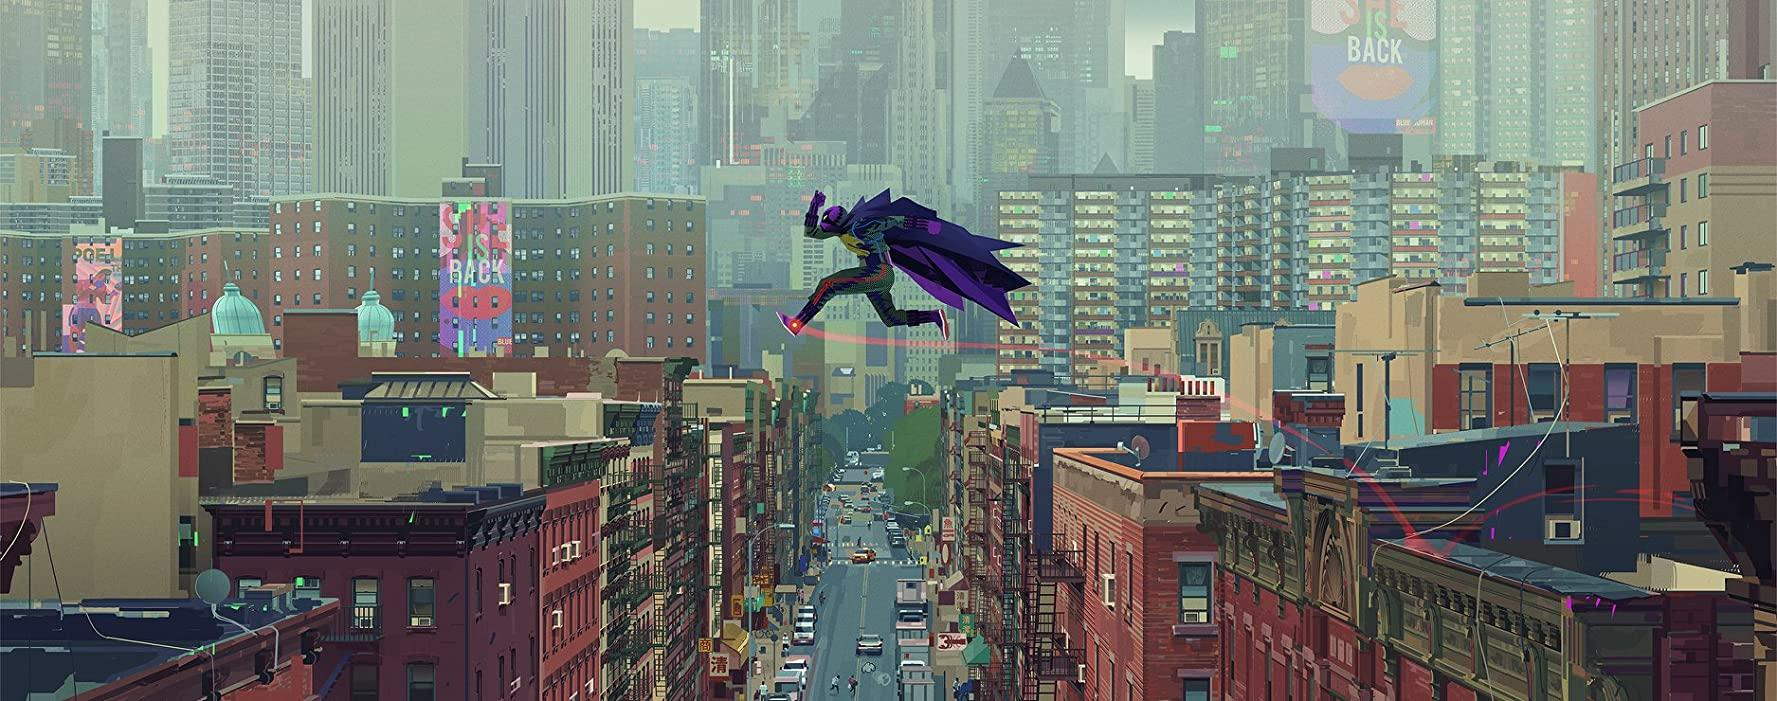 مشاهدة فيلم Spider-Man: into the Spider Verse (2019) مترجم HD اون لاين